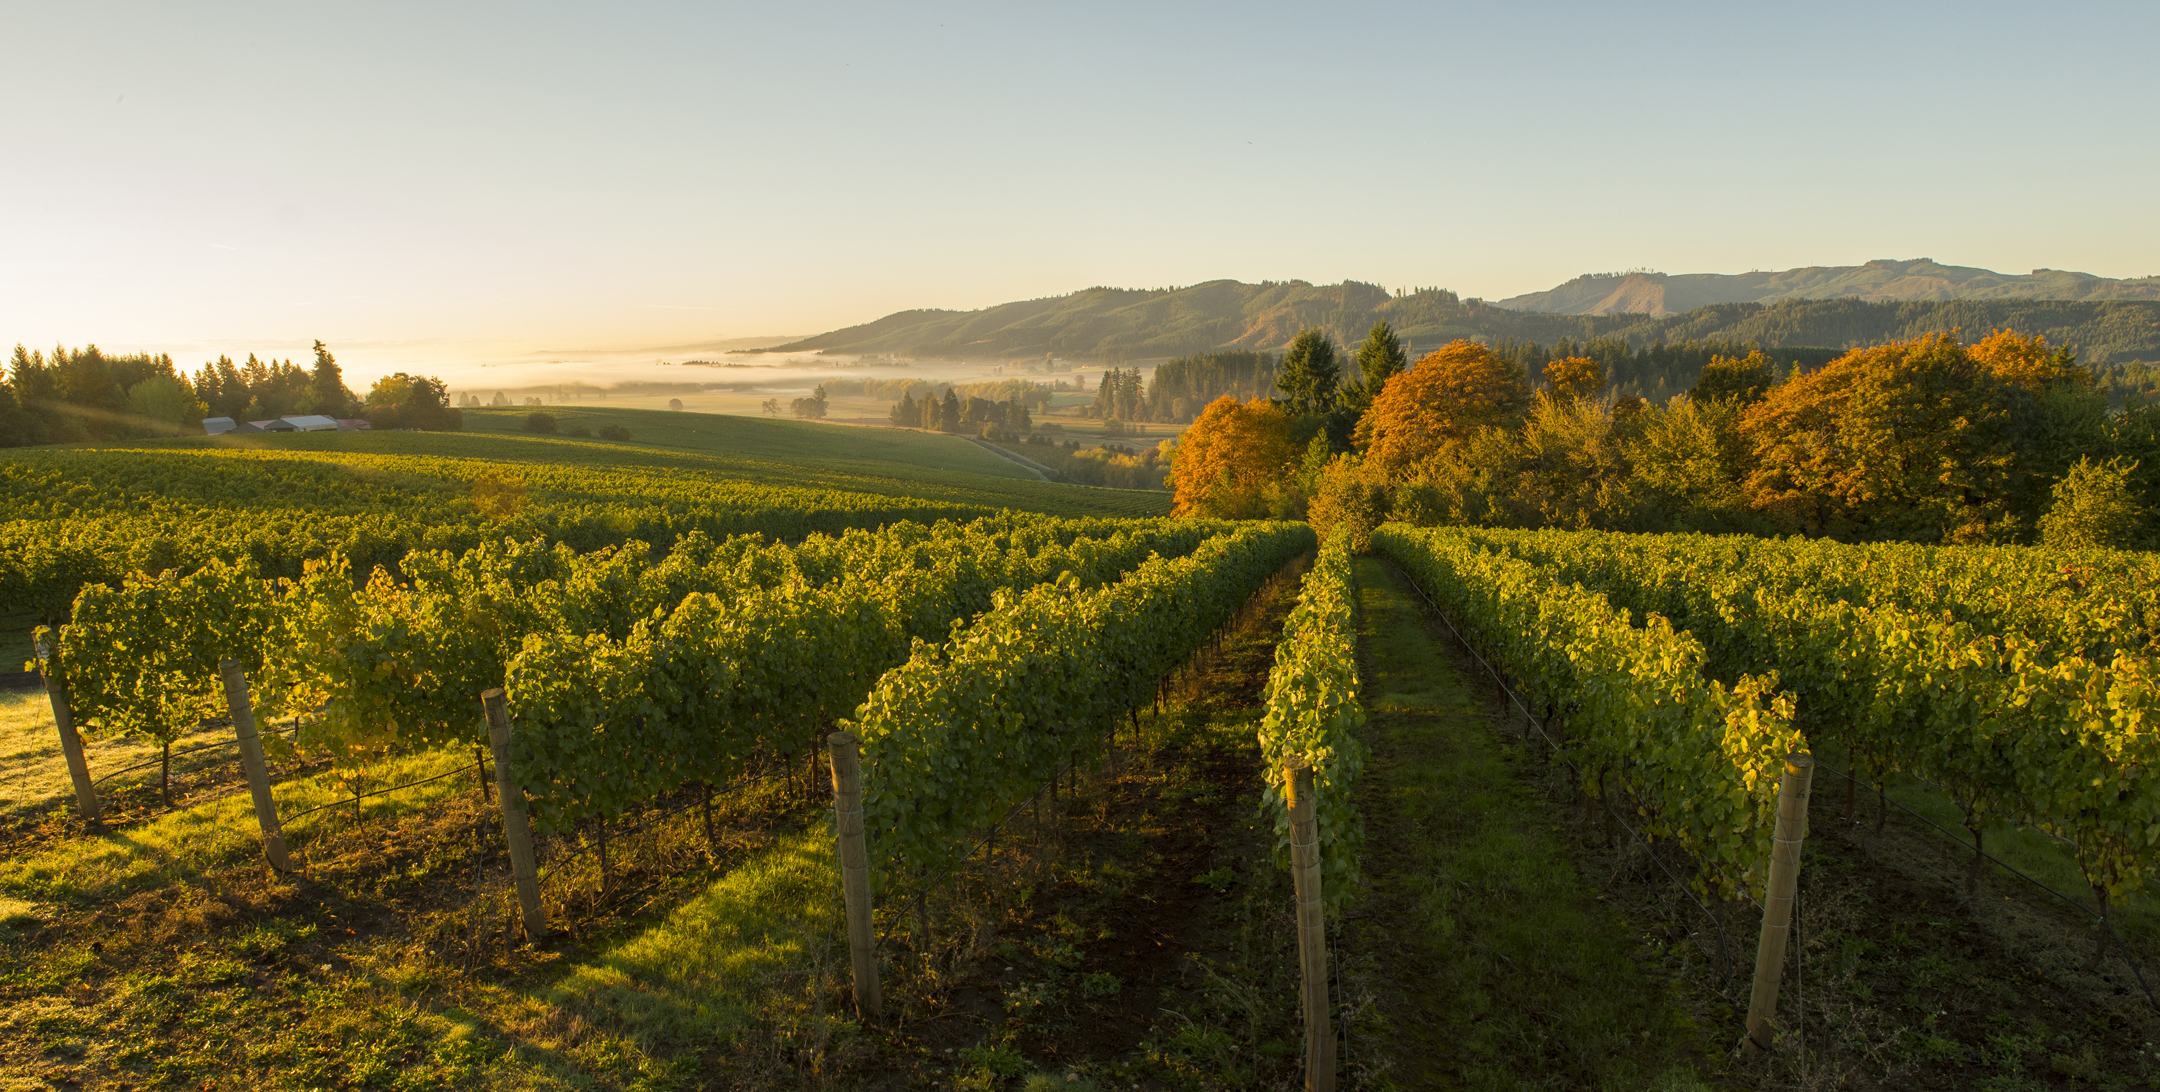 Willamette Valley Vineyards Trade And Press